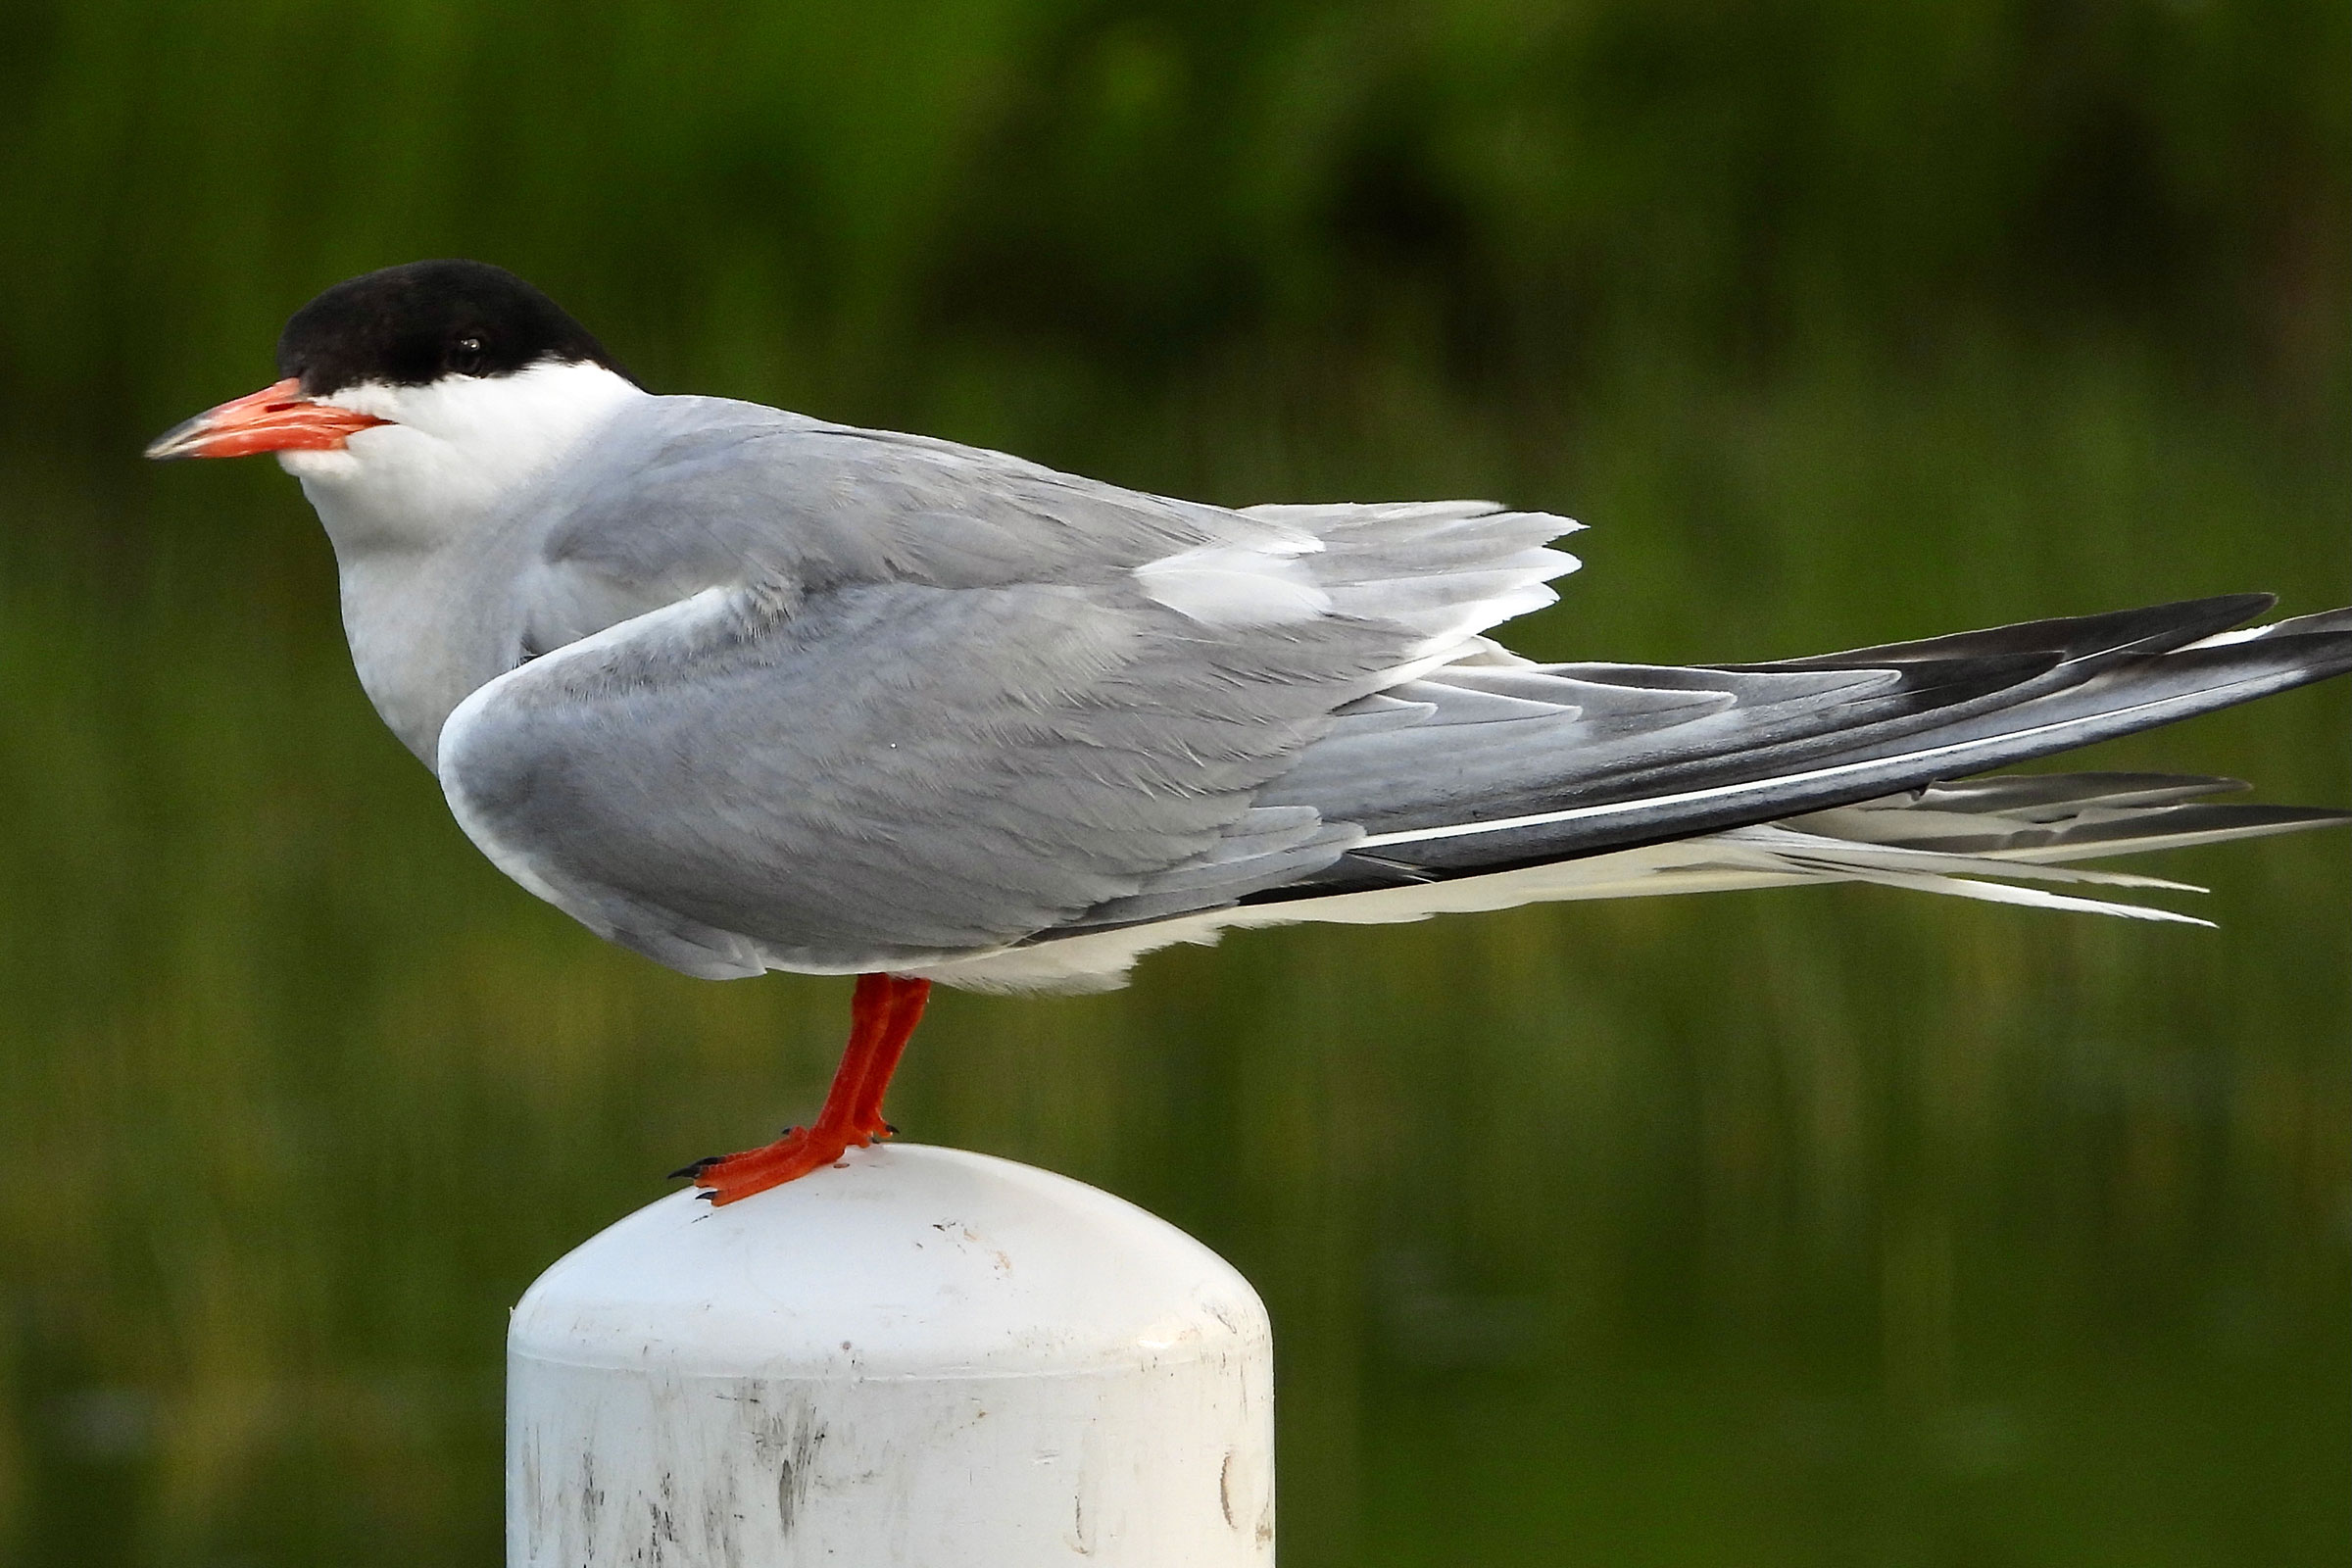 a bird with a light grey back, white chest, black head, and bright orange bill stands on a white post